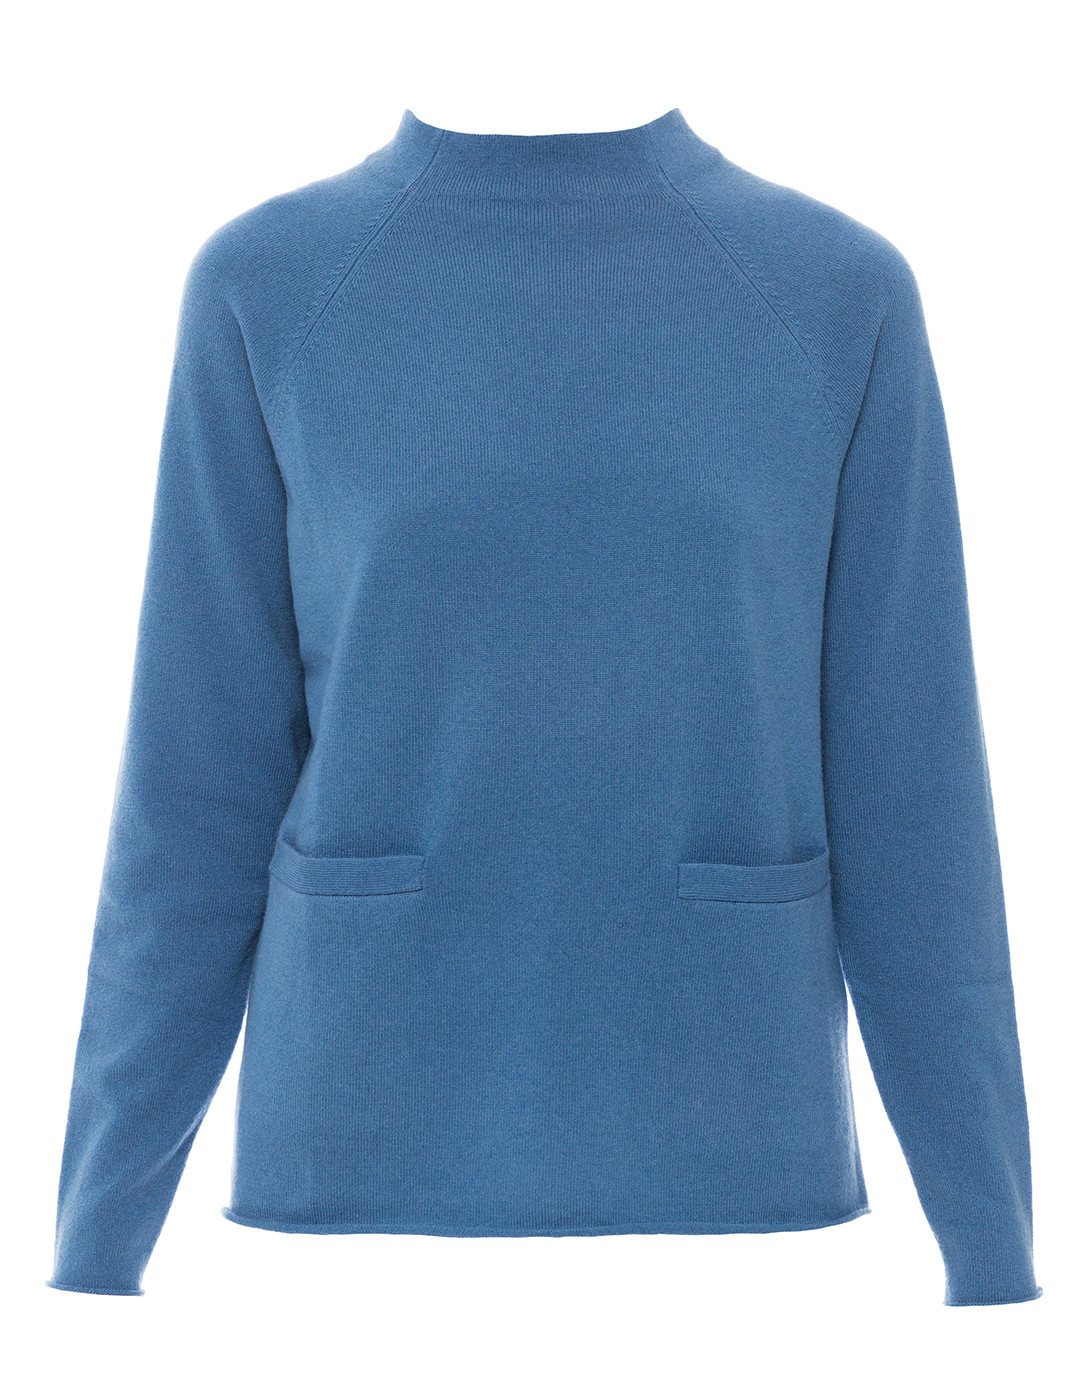 Sea Blue Pullover Sweater with Front Pockets   Allude   Halsbrook